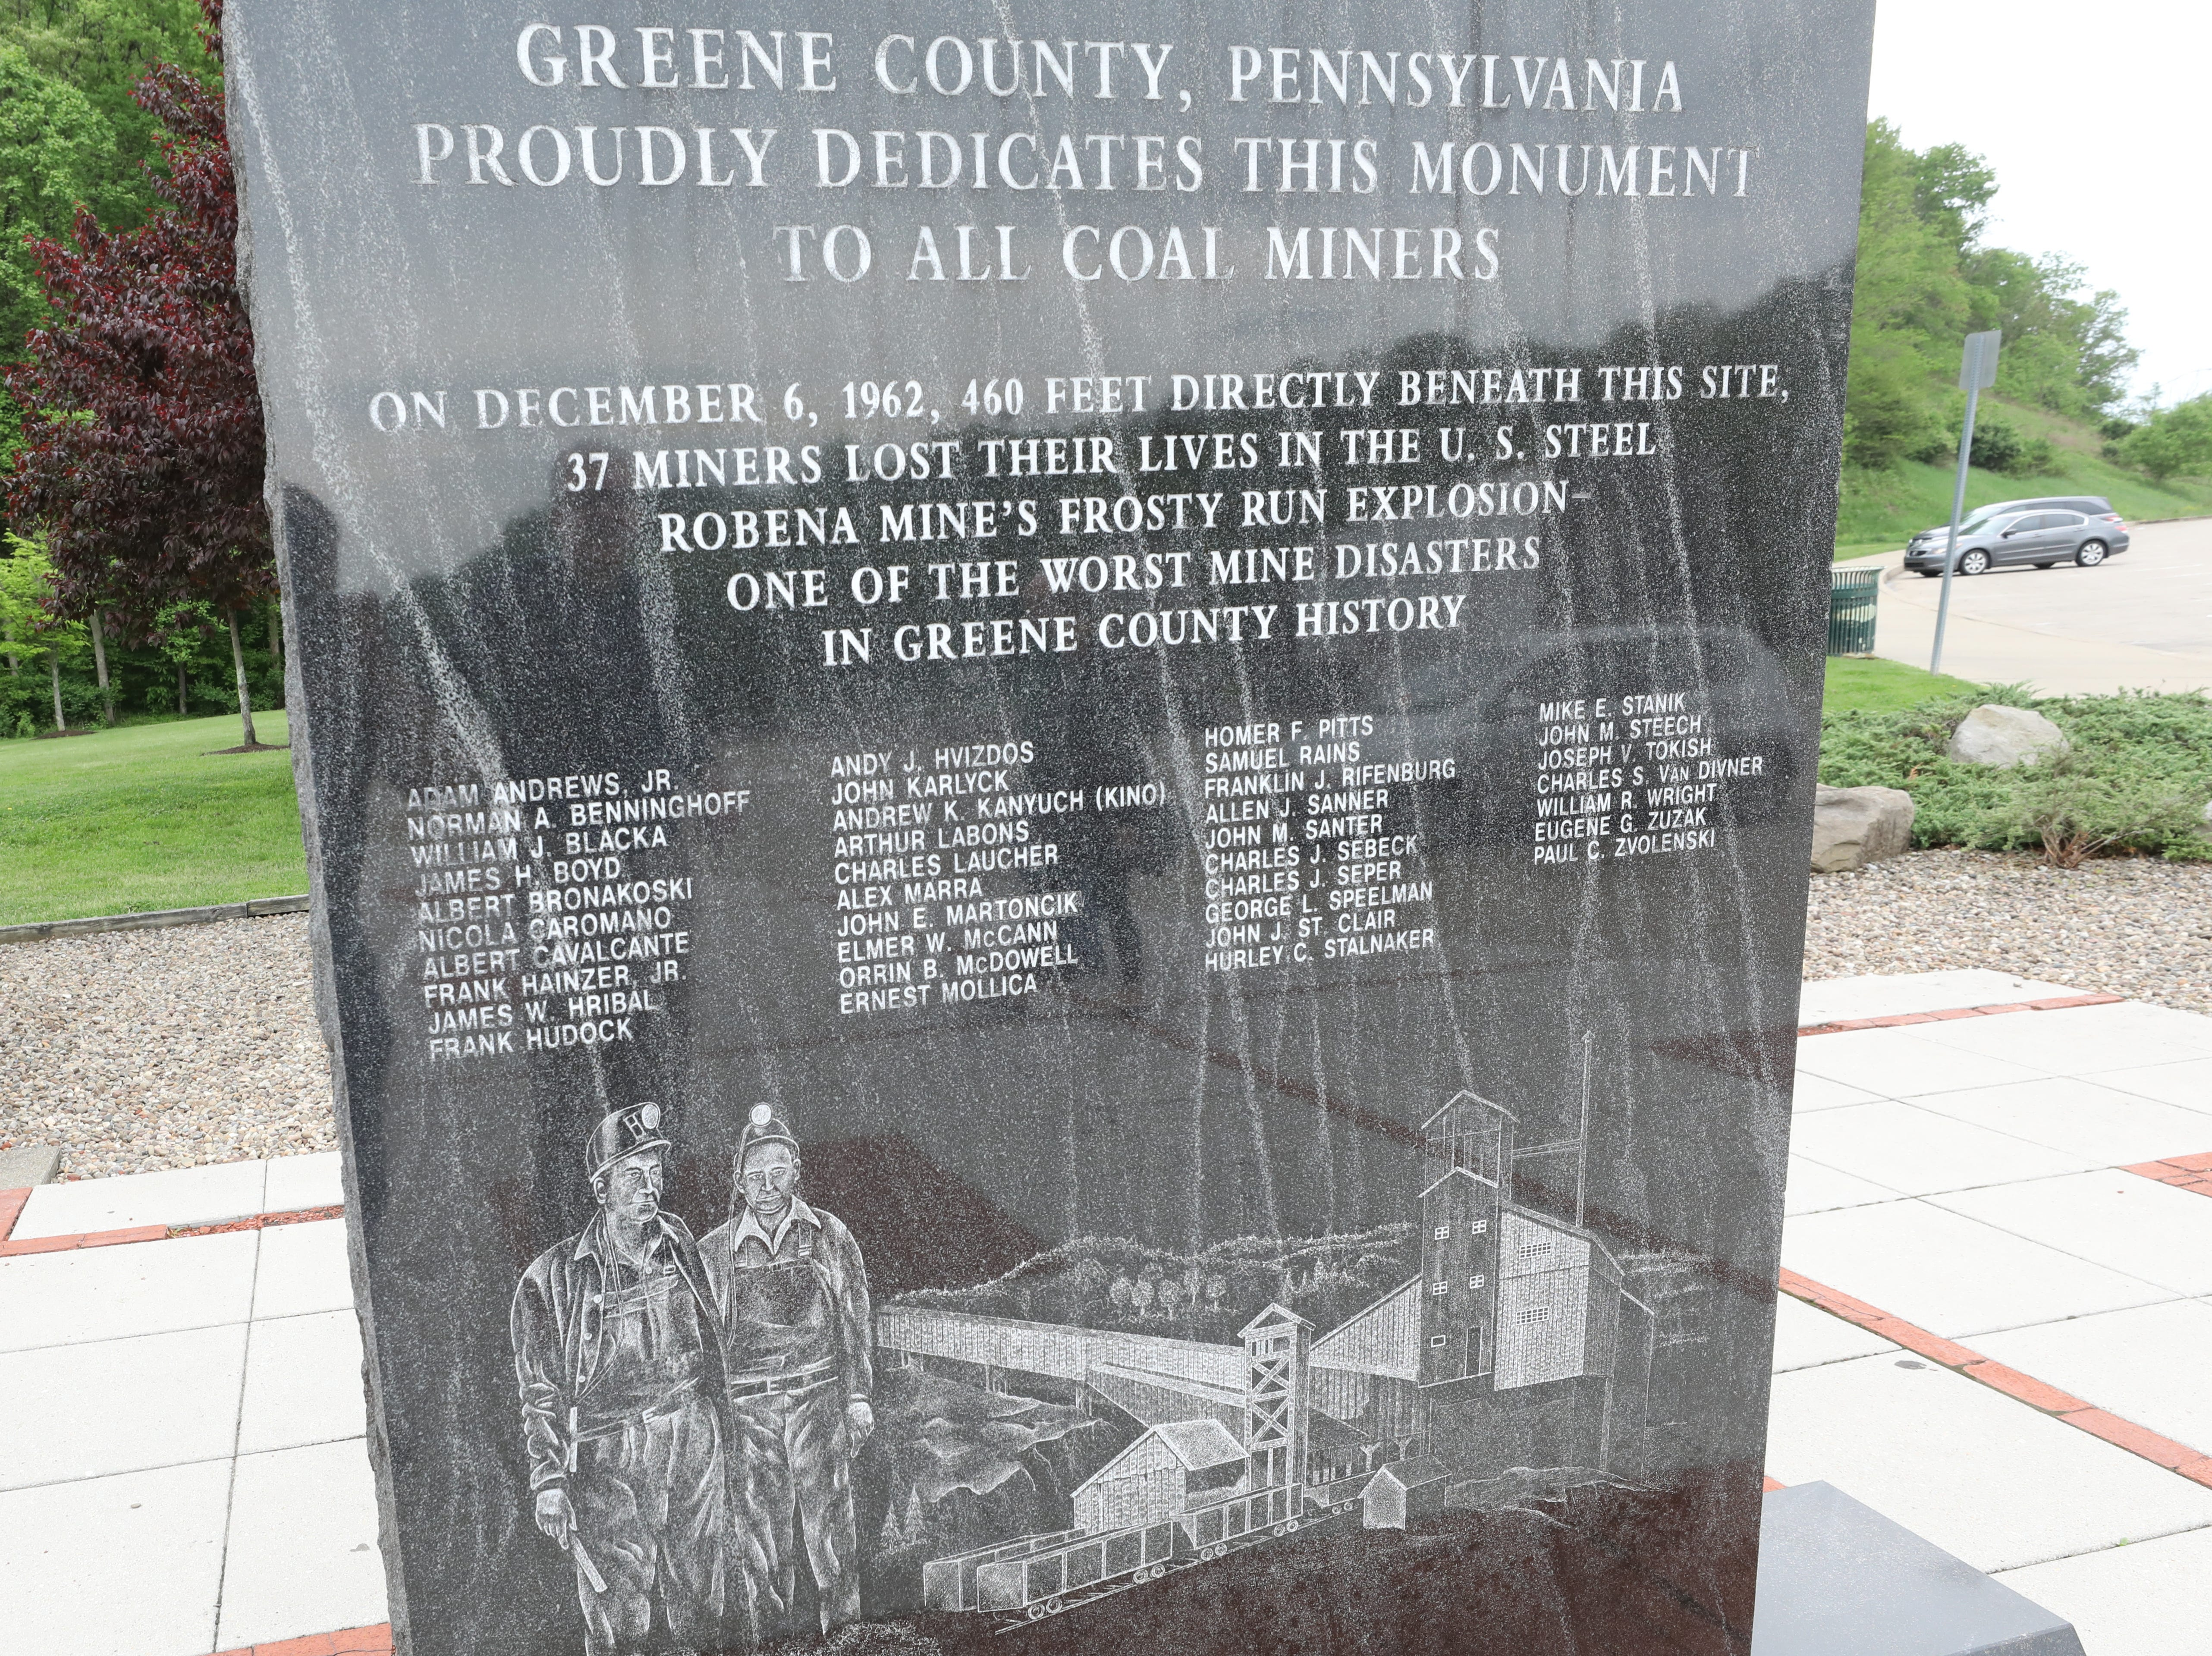 A monument dedicated to coal miners who were killed in a coal mine disaster in 1962 can be seen on the highway toward Waynesburg.